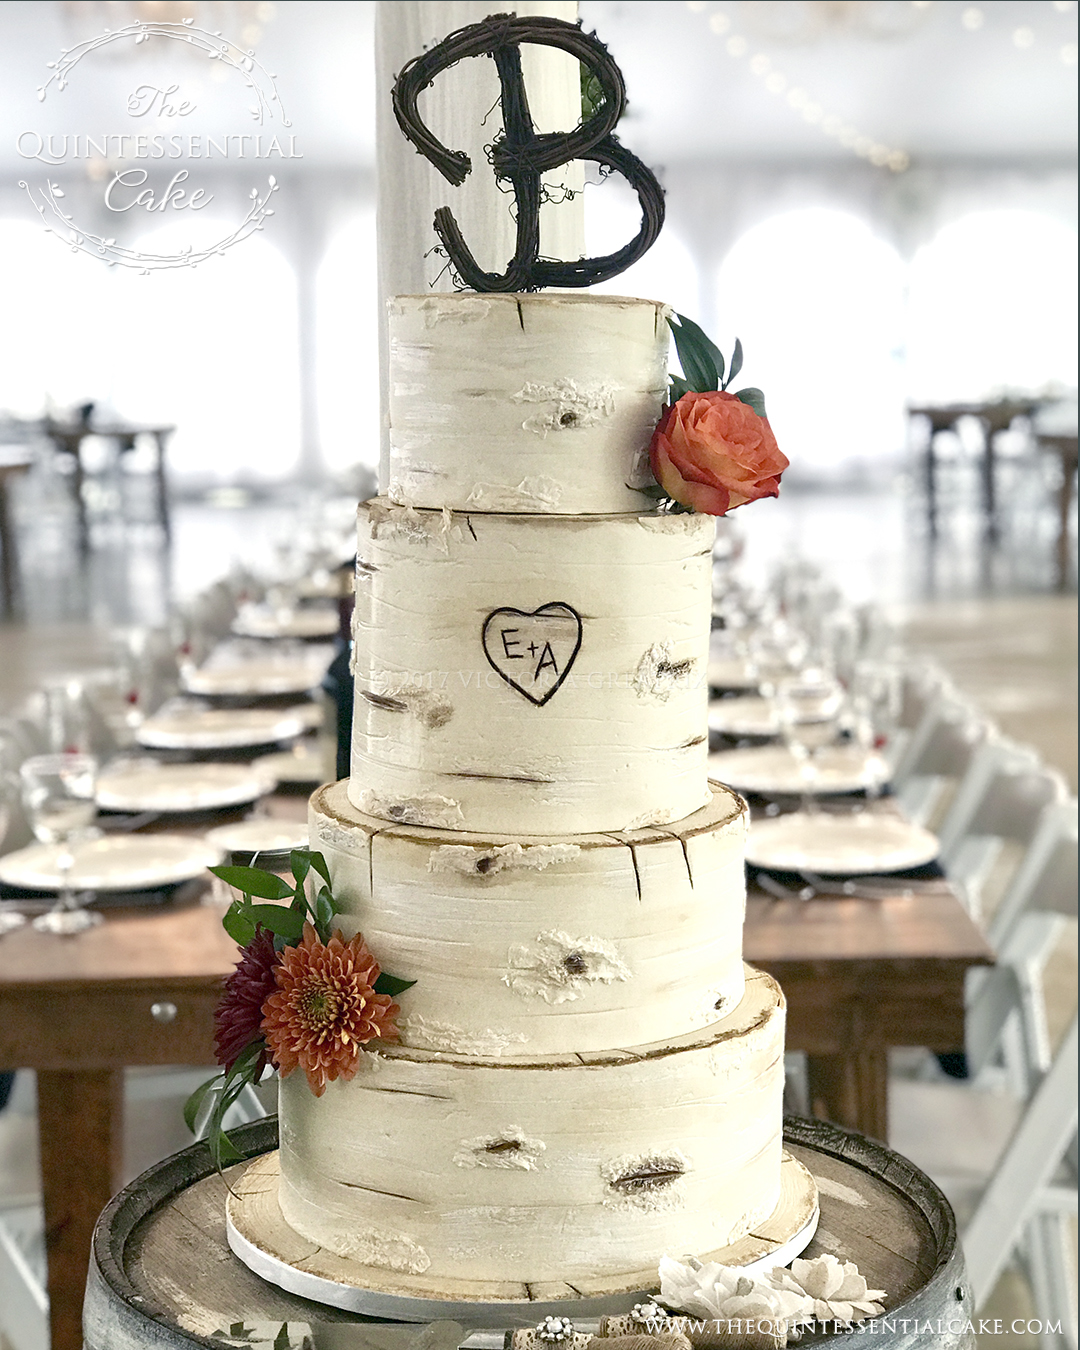 TQC Birch Tree Wedding Cake | The Quintessential Cake | Chicago | Luxury Wedding Cakes | Emerson Creek Pottery & Tea Room